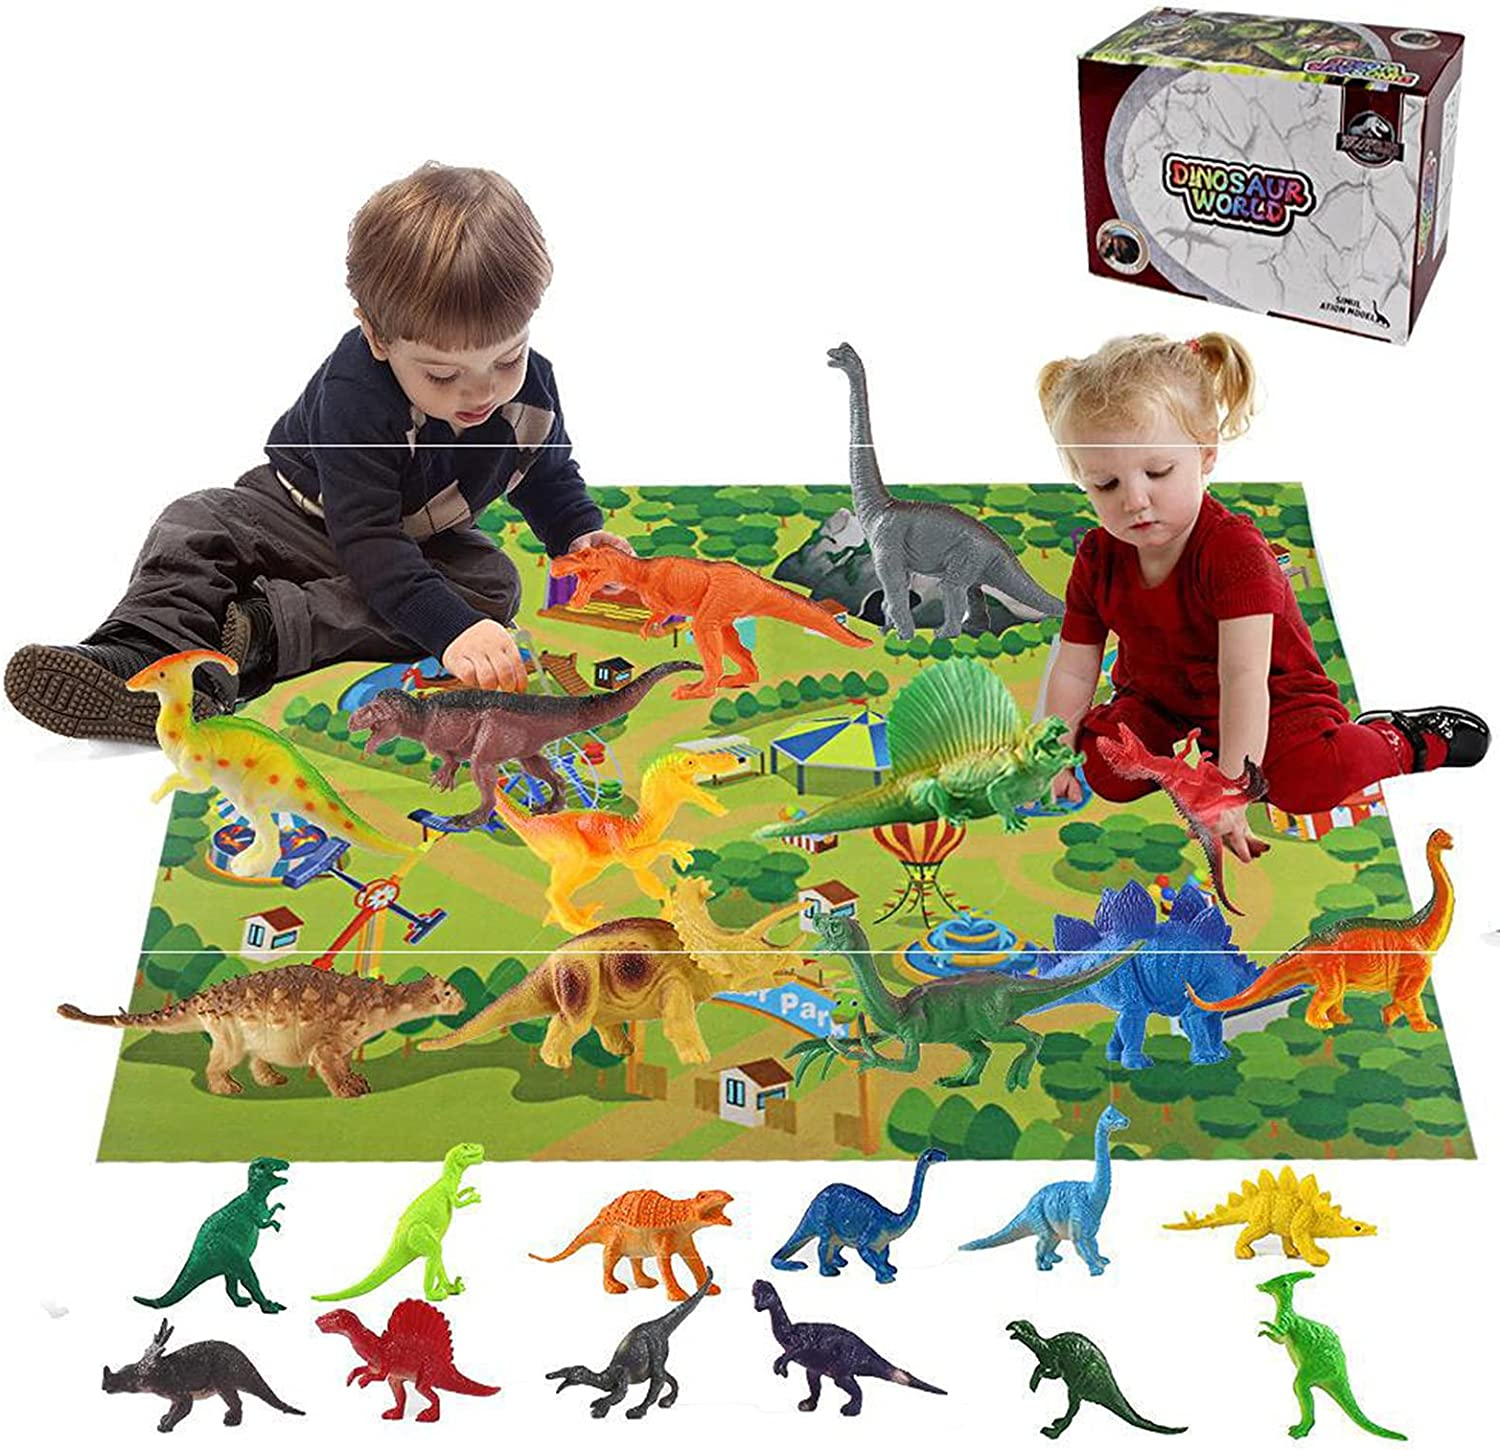 Washington Mall Dinosaur Toy Figure with Activity Sales of SALE items from new works Realistic Play Mat Educational